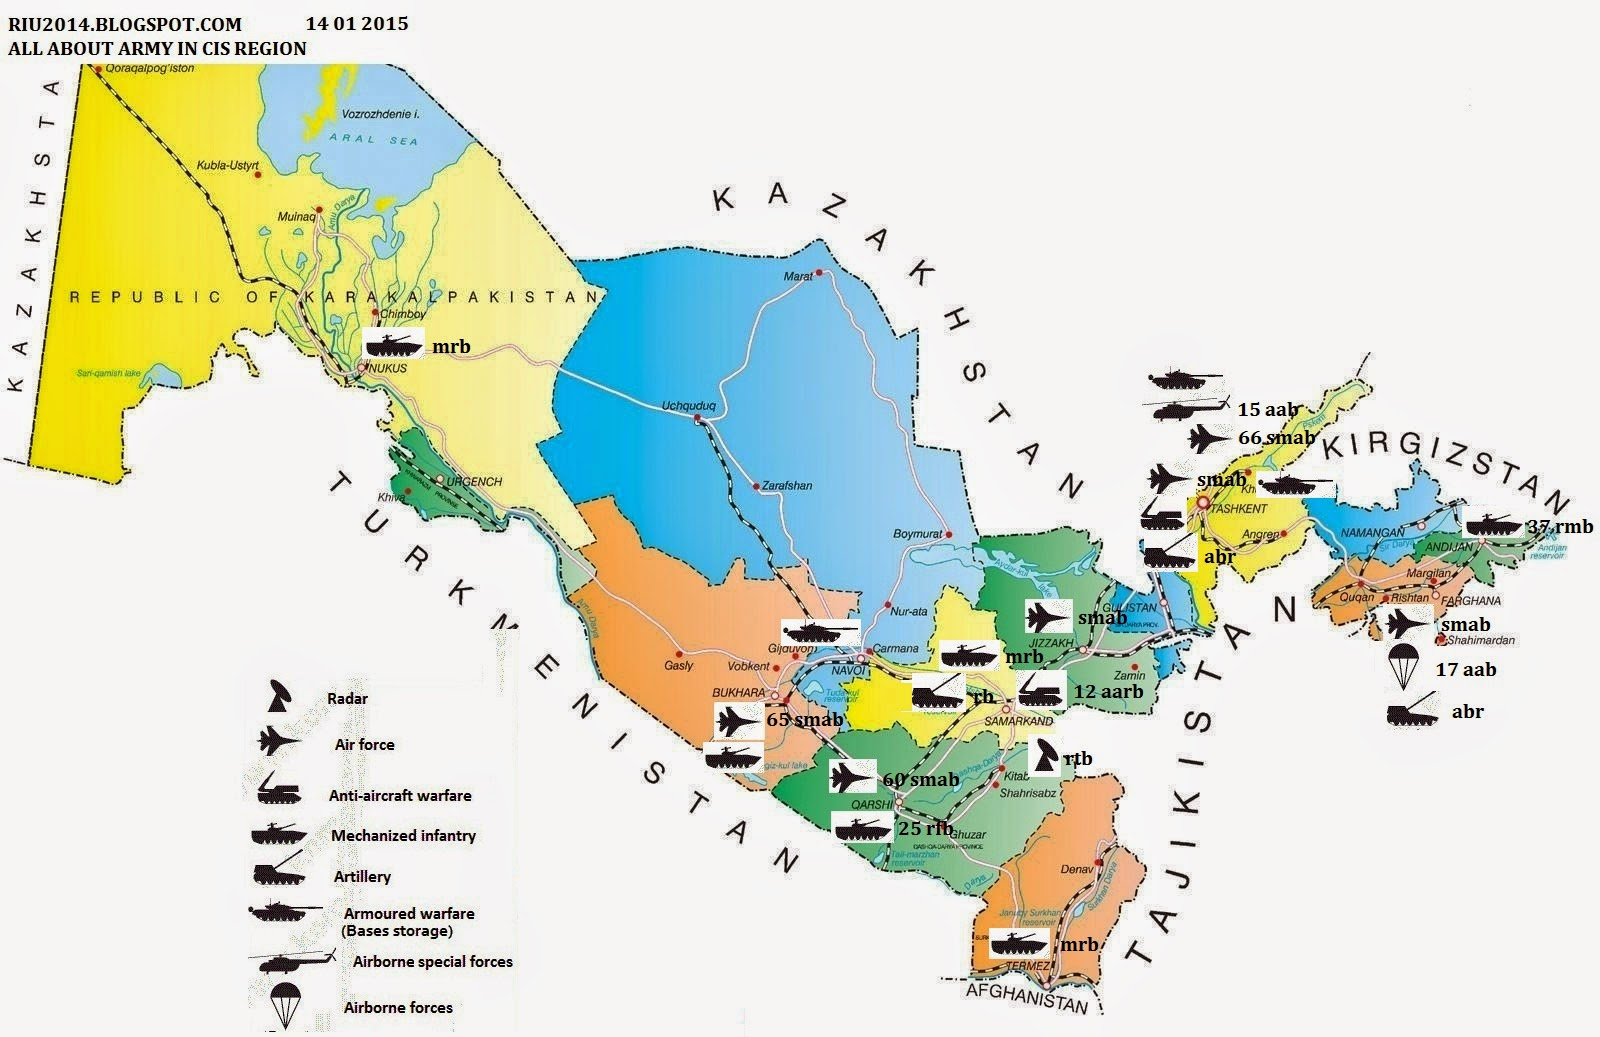 Armed Forces Of The Republic Of Uzbekistan Map And Structure - Uzbekistan map